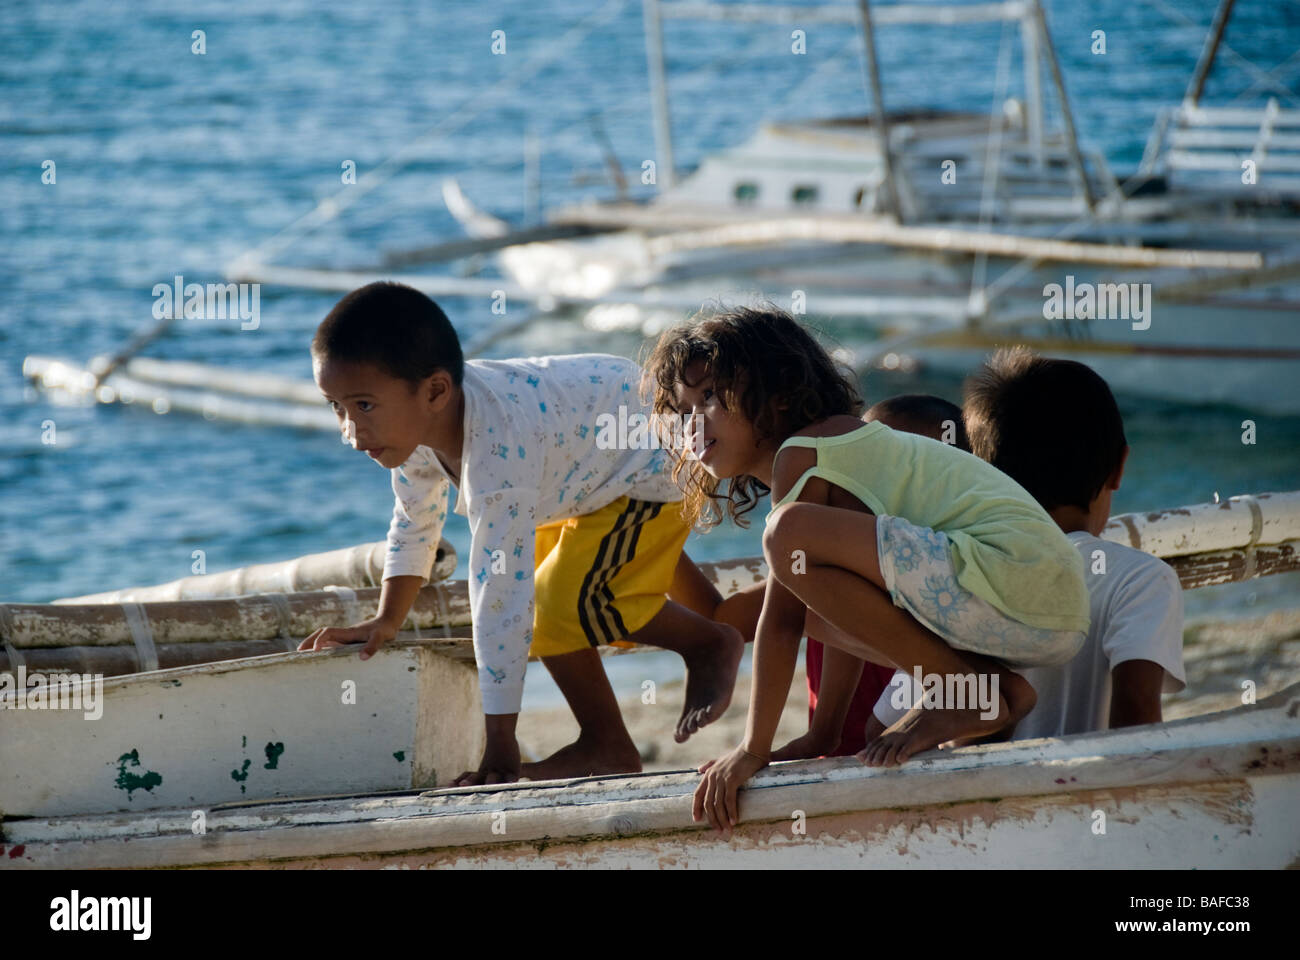 Children playing in a boat on the beach at Apo Island, Philippines - Stock Image